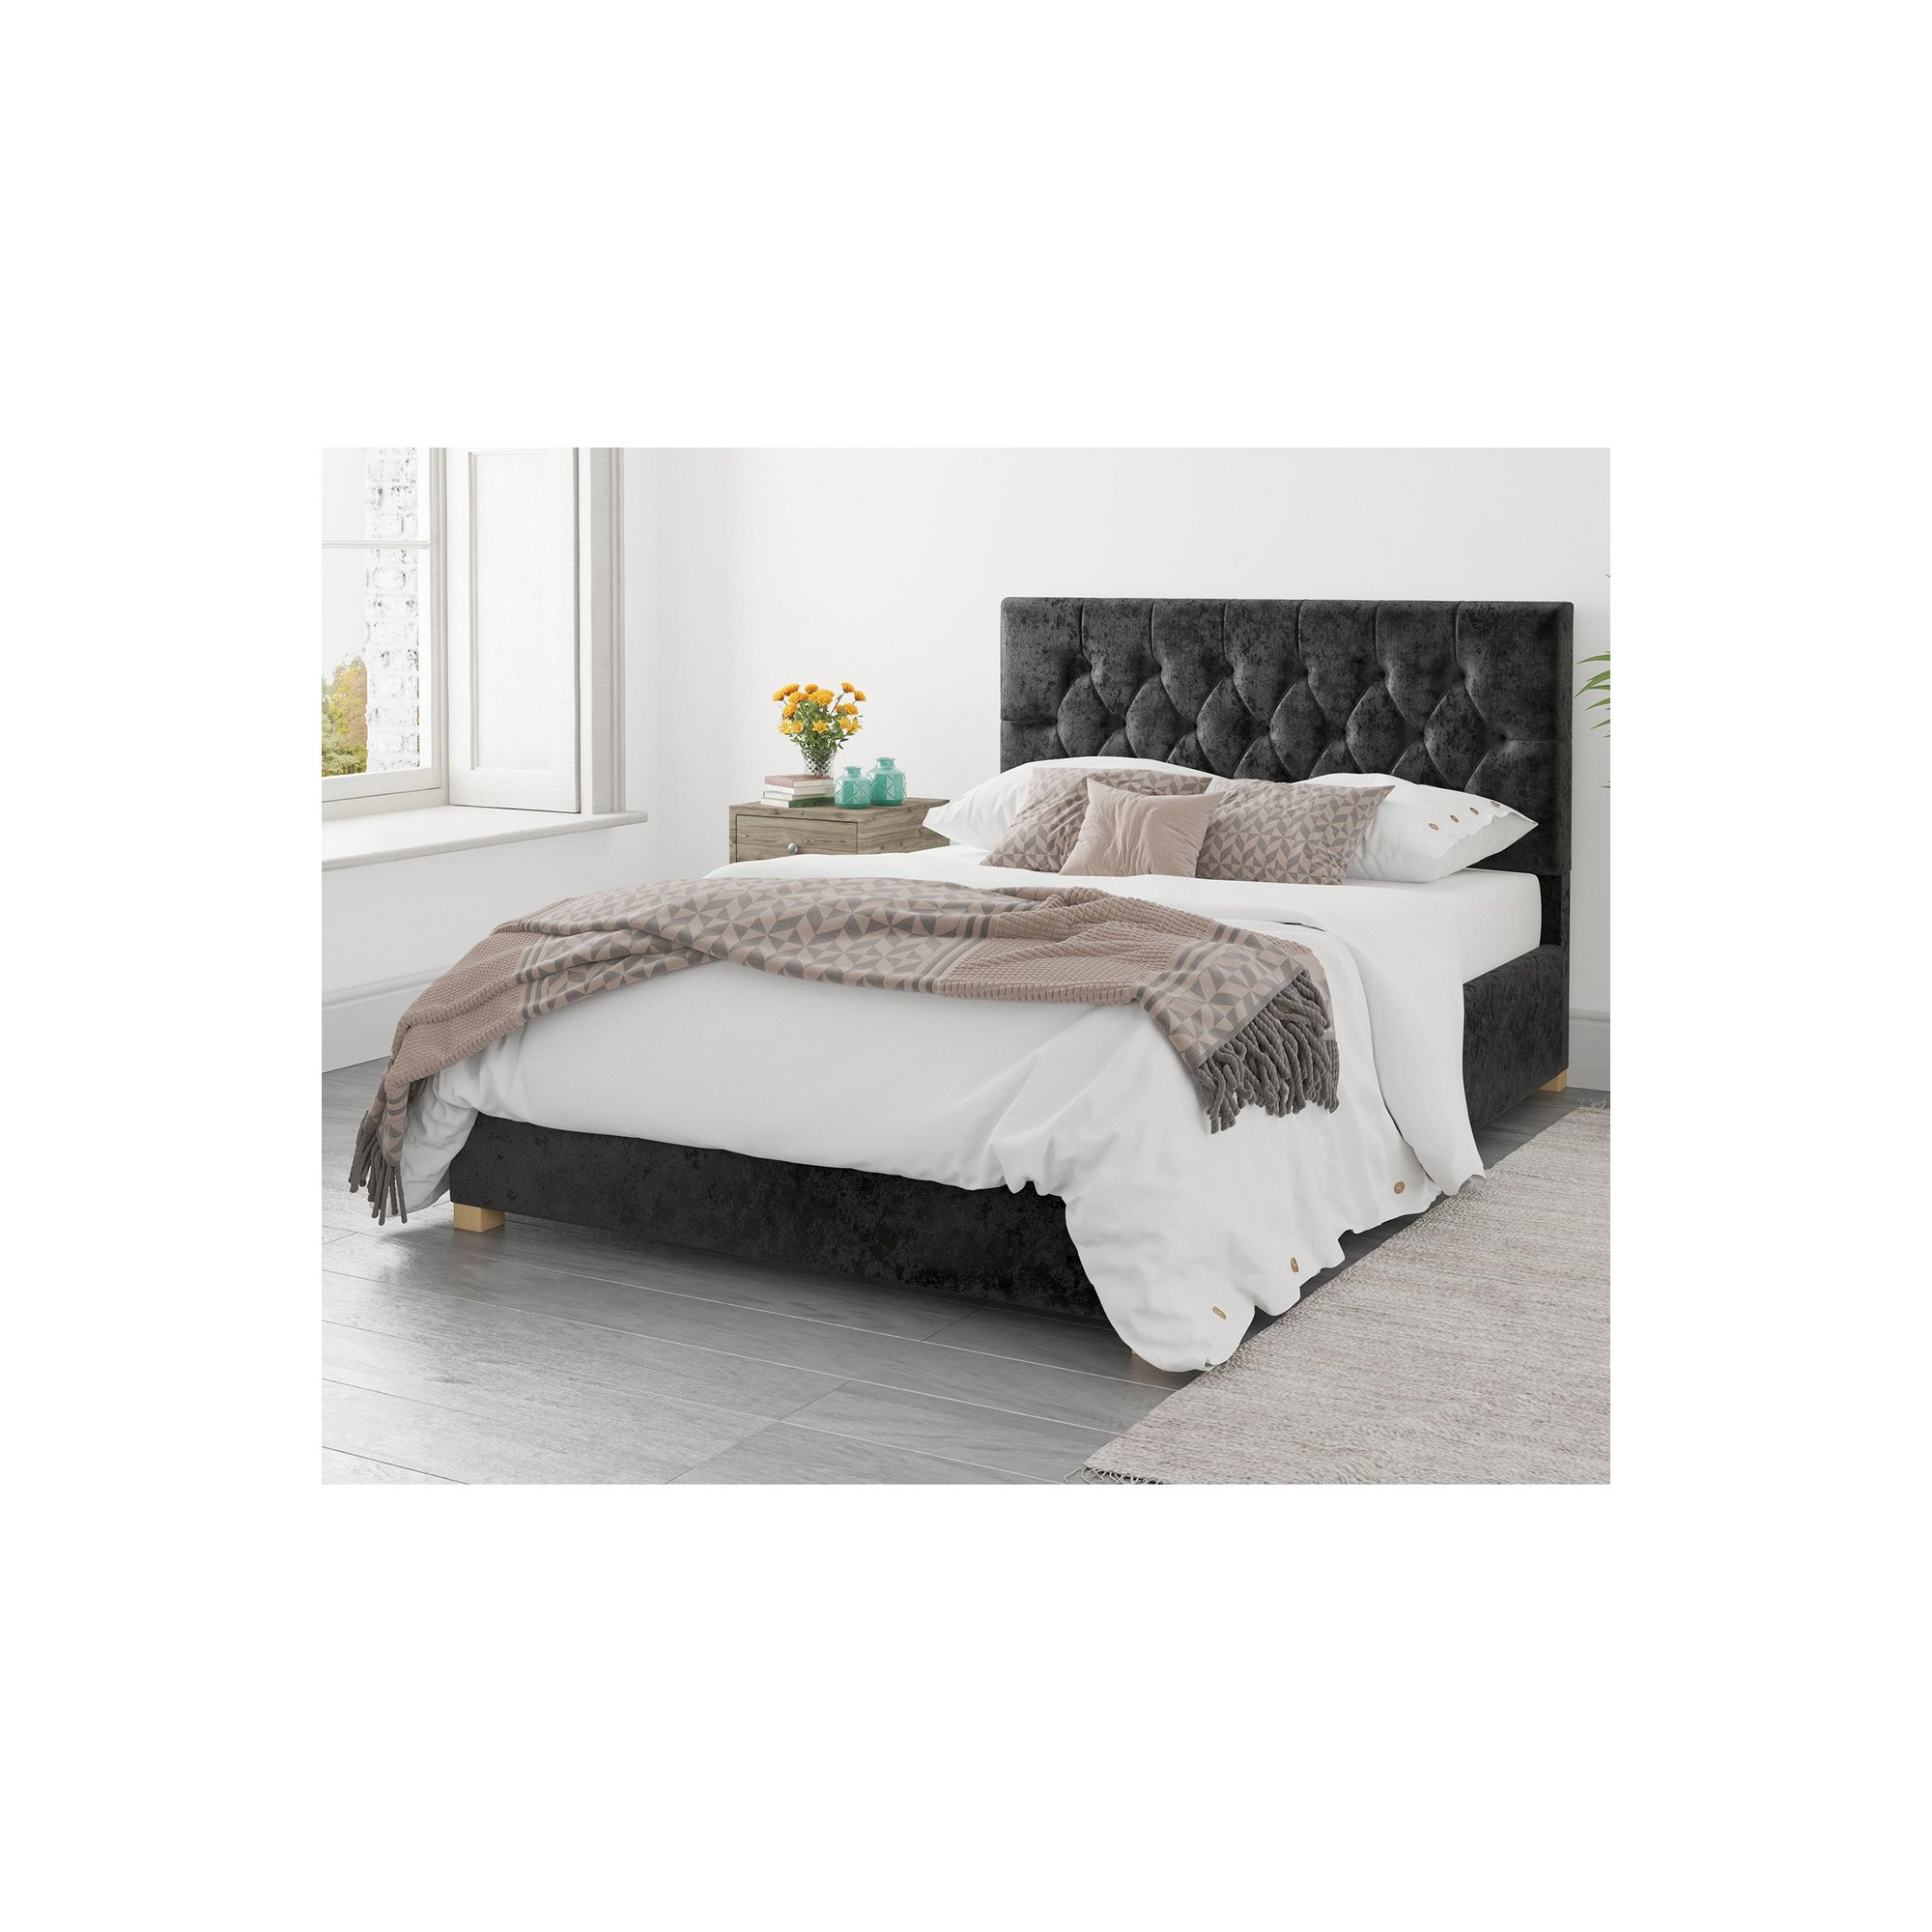 Image of Aspire Olivier Ottoman Bed